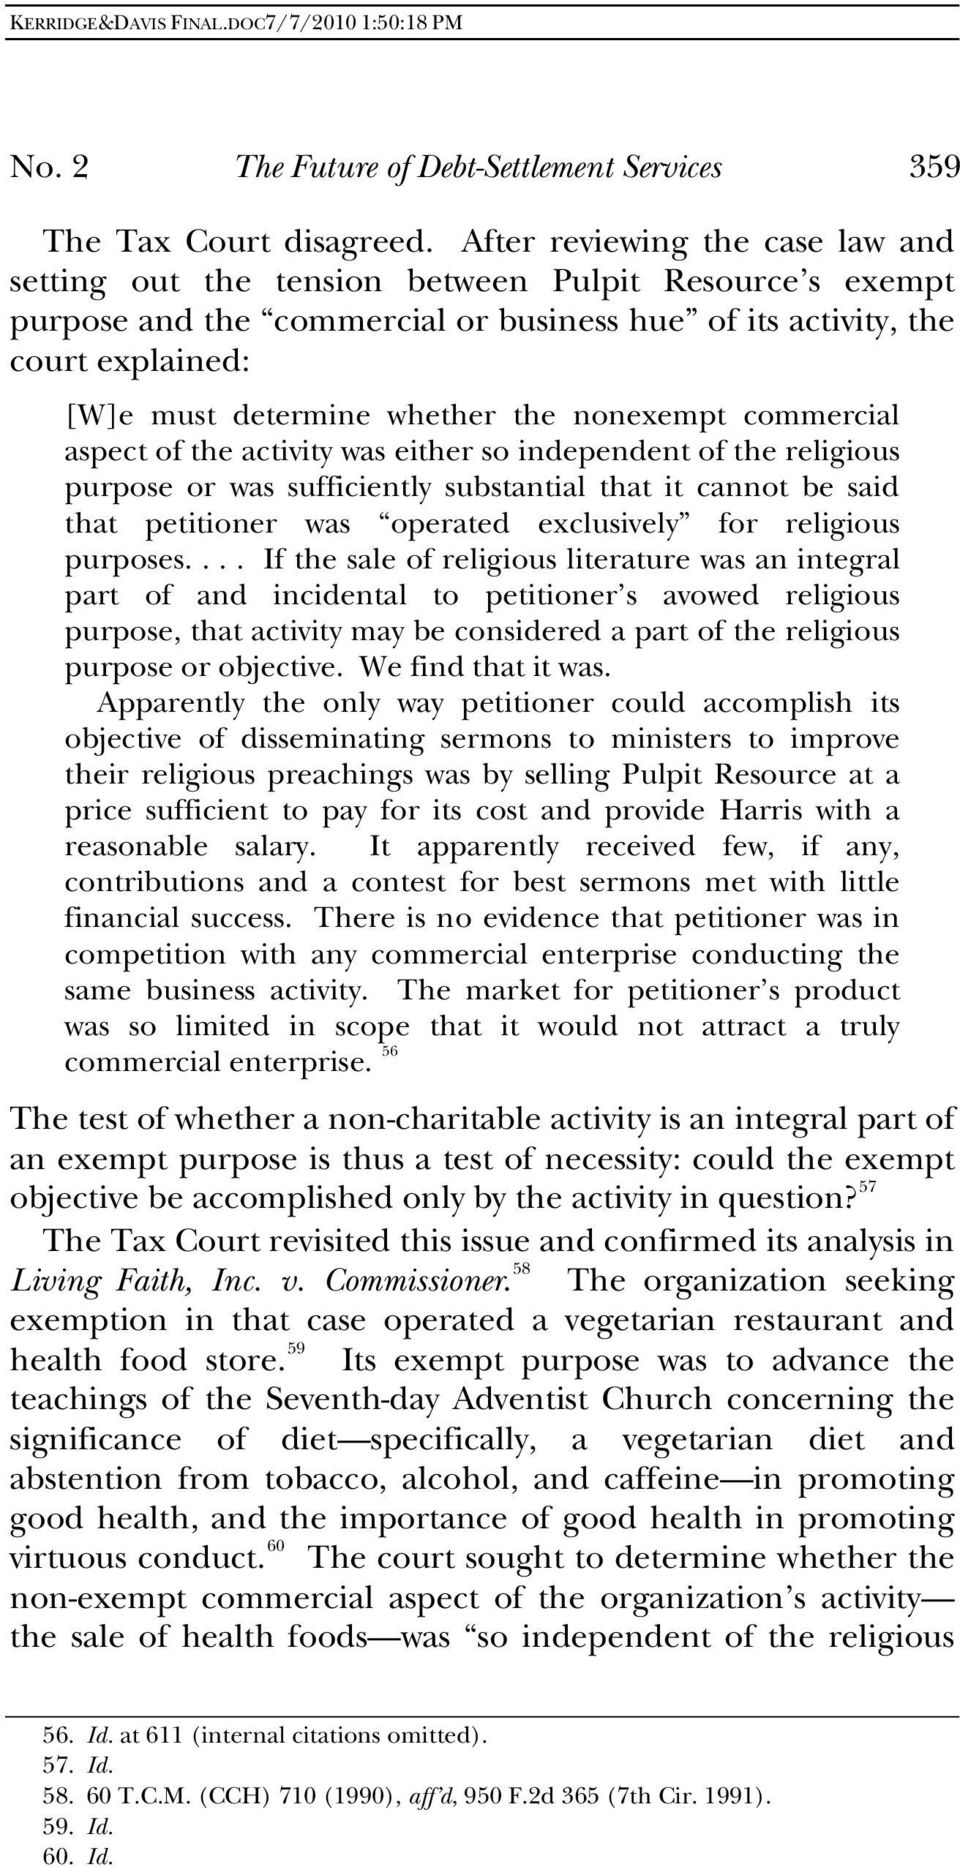 the nonexempt commercial aspect of the activity was either so independent of the religious purpose or was sufficiently substantial that it cannot be said that petitioner was operated exclusively for